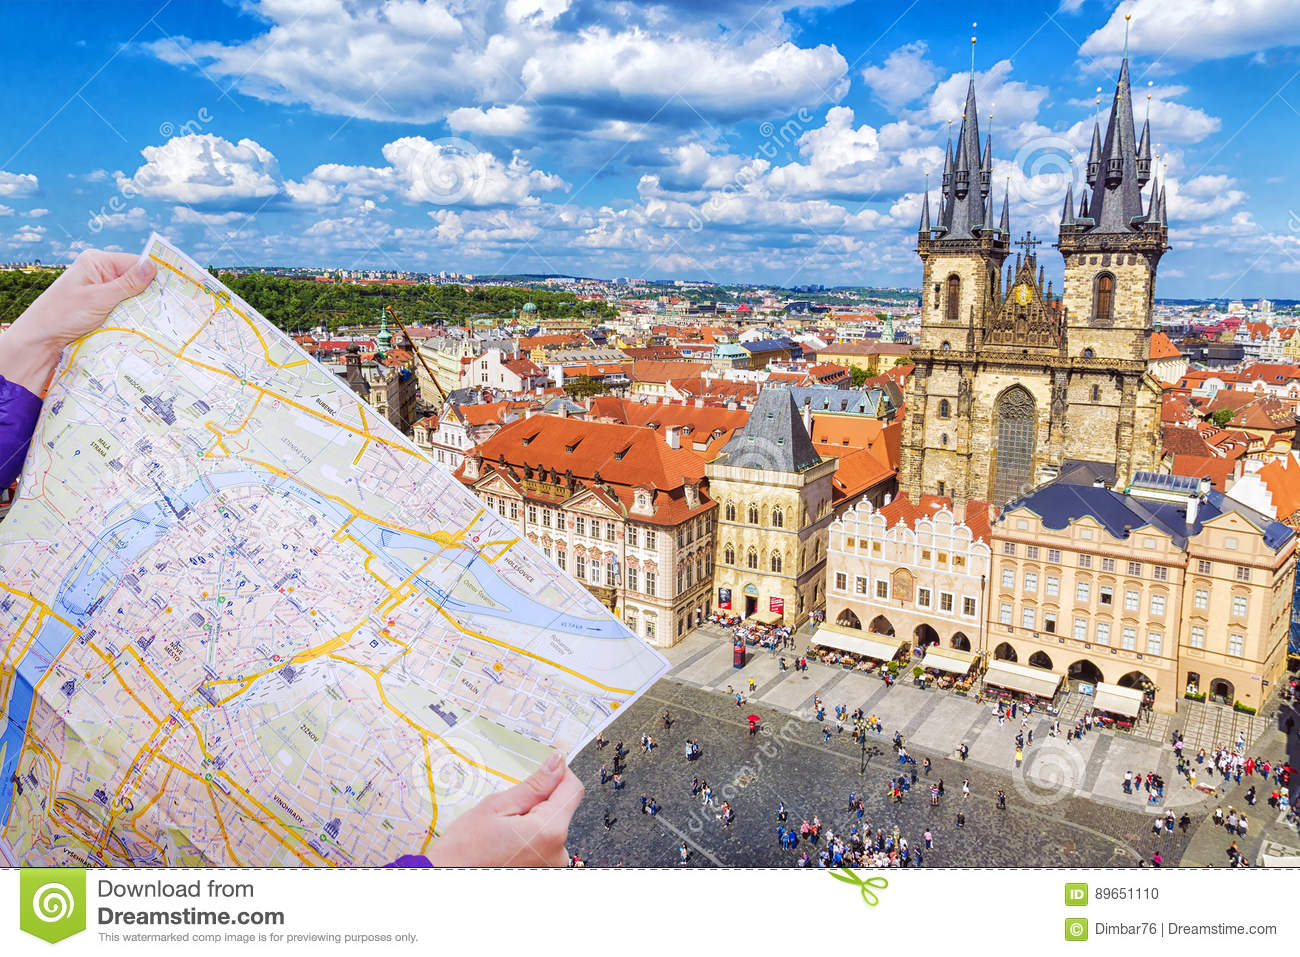 Tourist Map Of Prague Against The Background Of The Old Town ... on old town krakow poland map, old town san diego map, old town dubrovnik croatia map, finland helsinki map tourist,